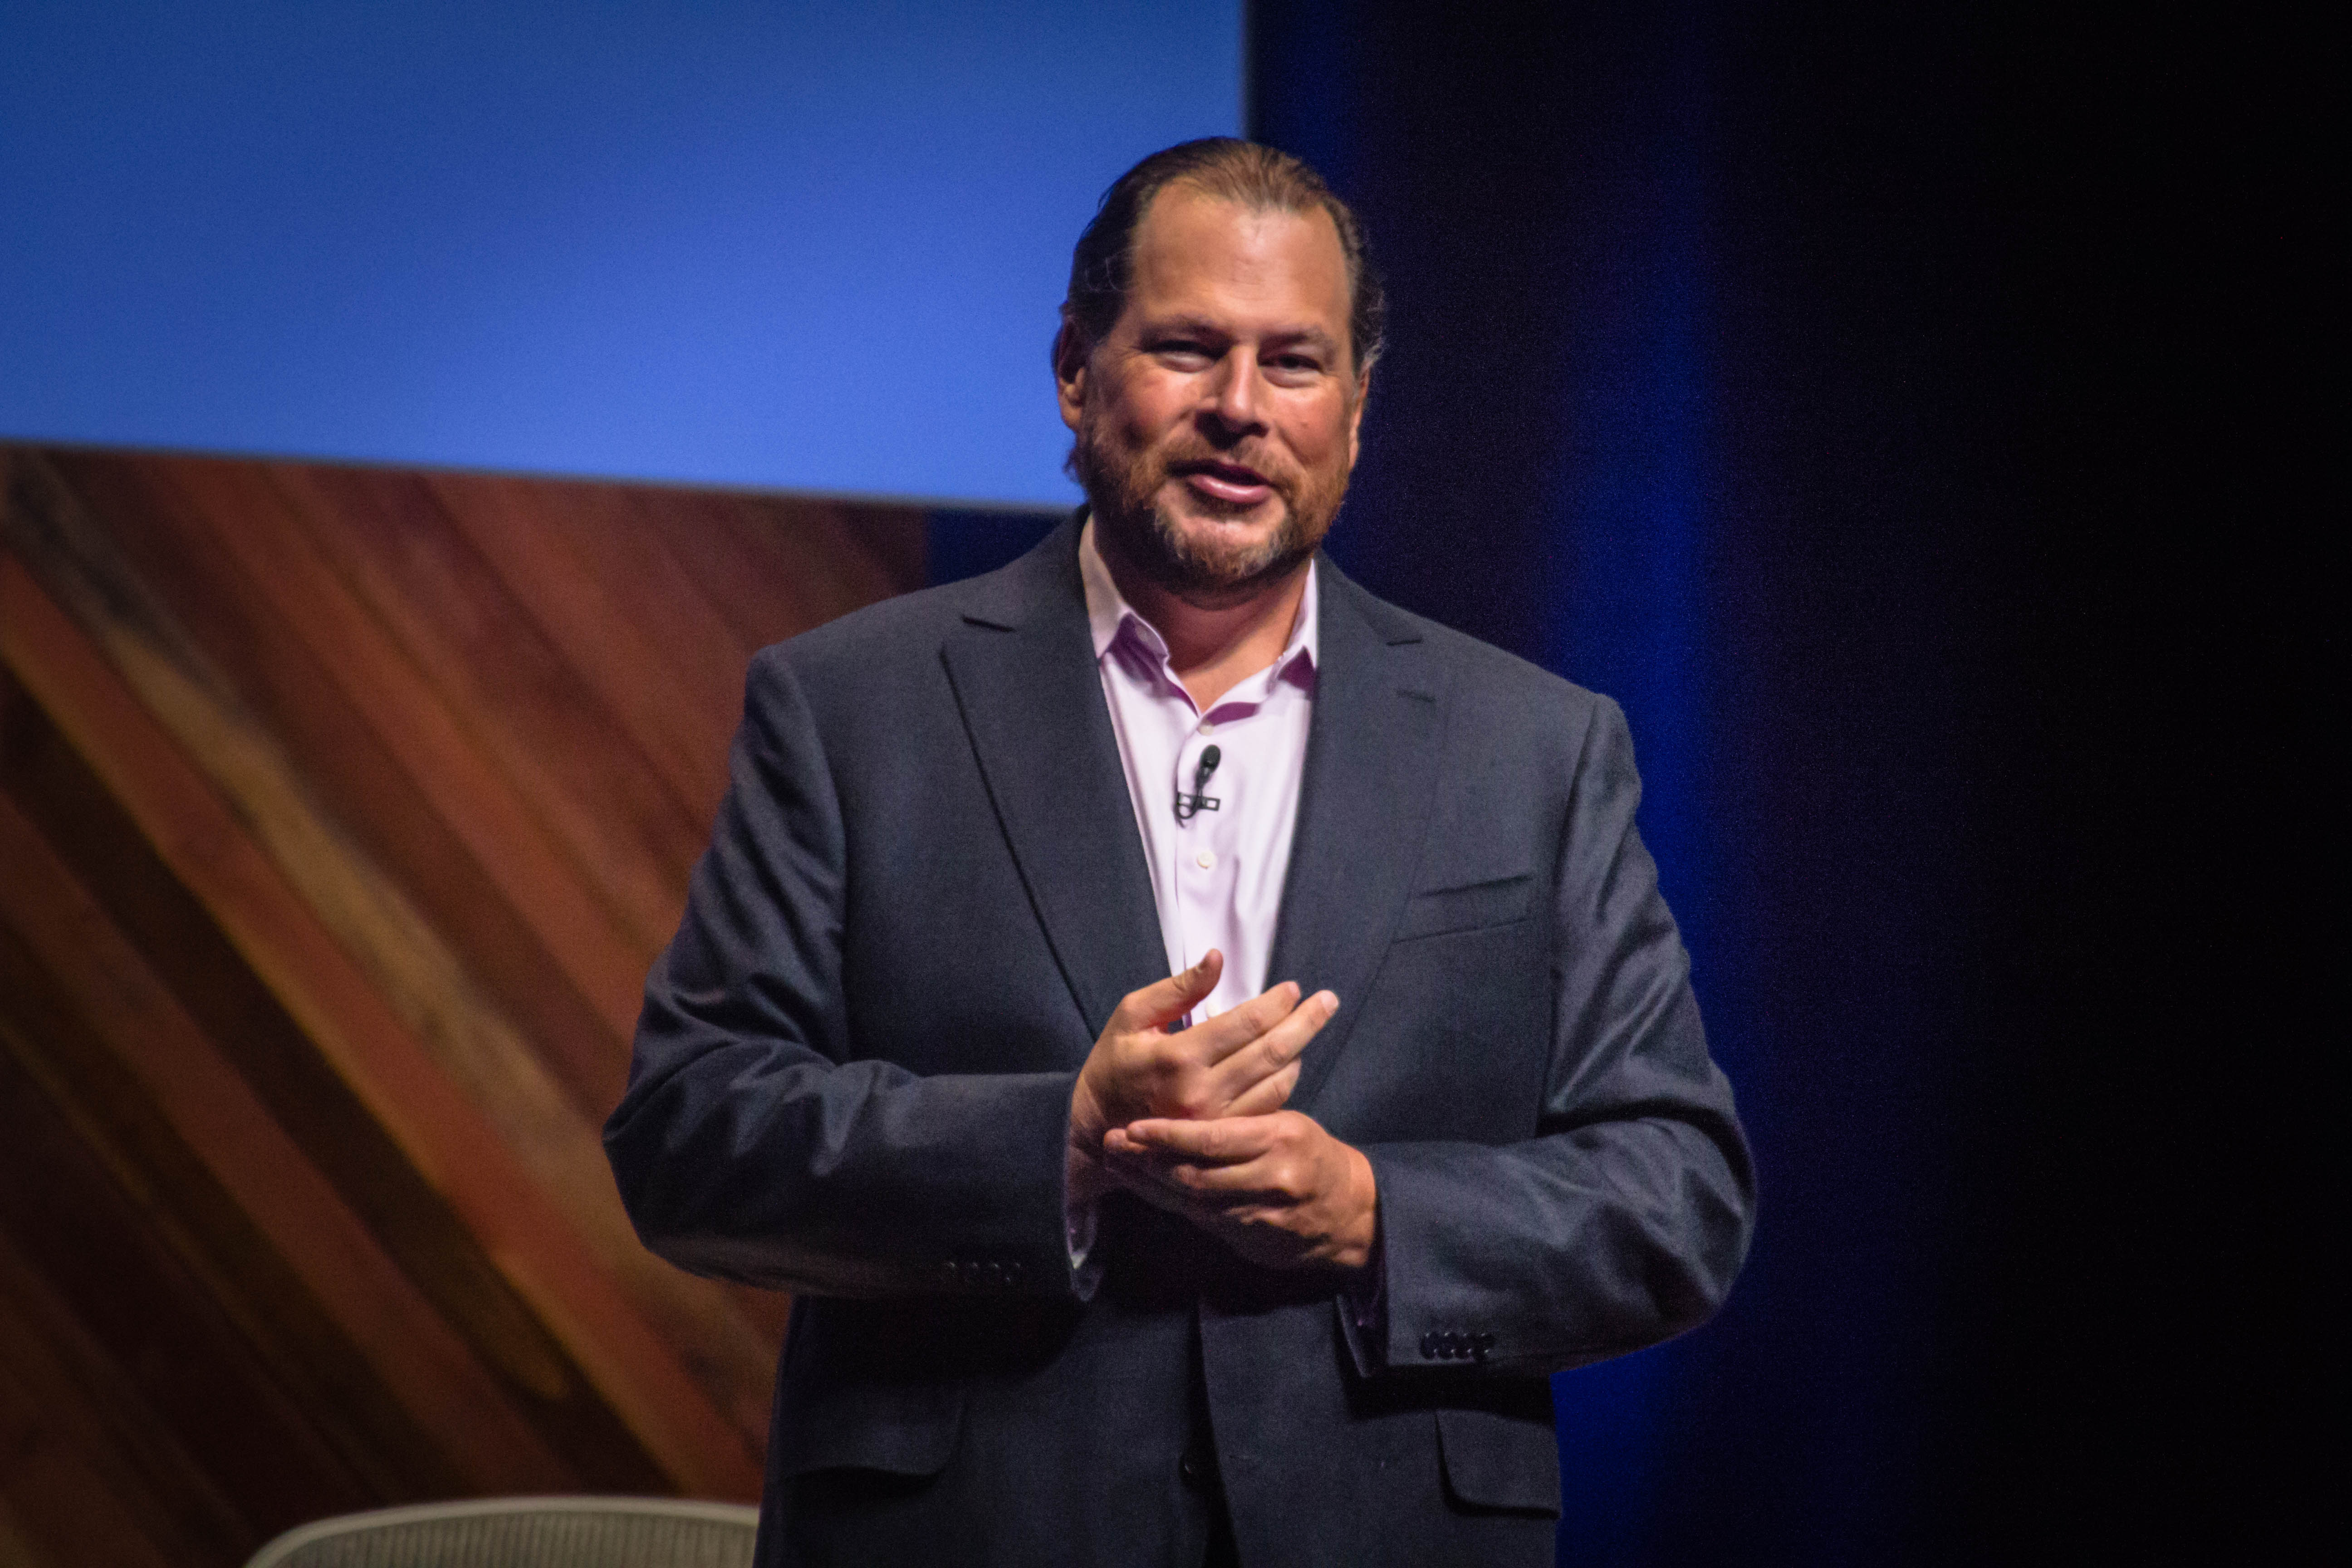 Salesforce chief executive Marc Benioff at Dreamforce 2015 in San Francisco, Calif.